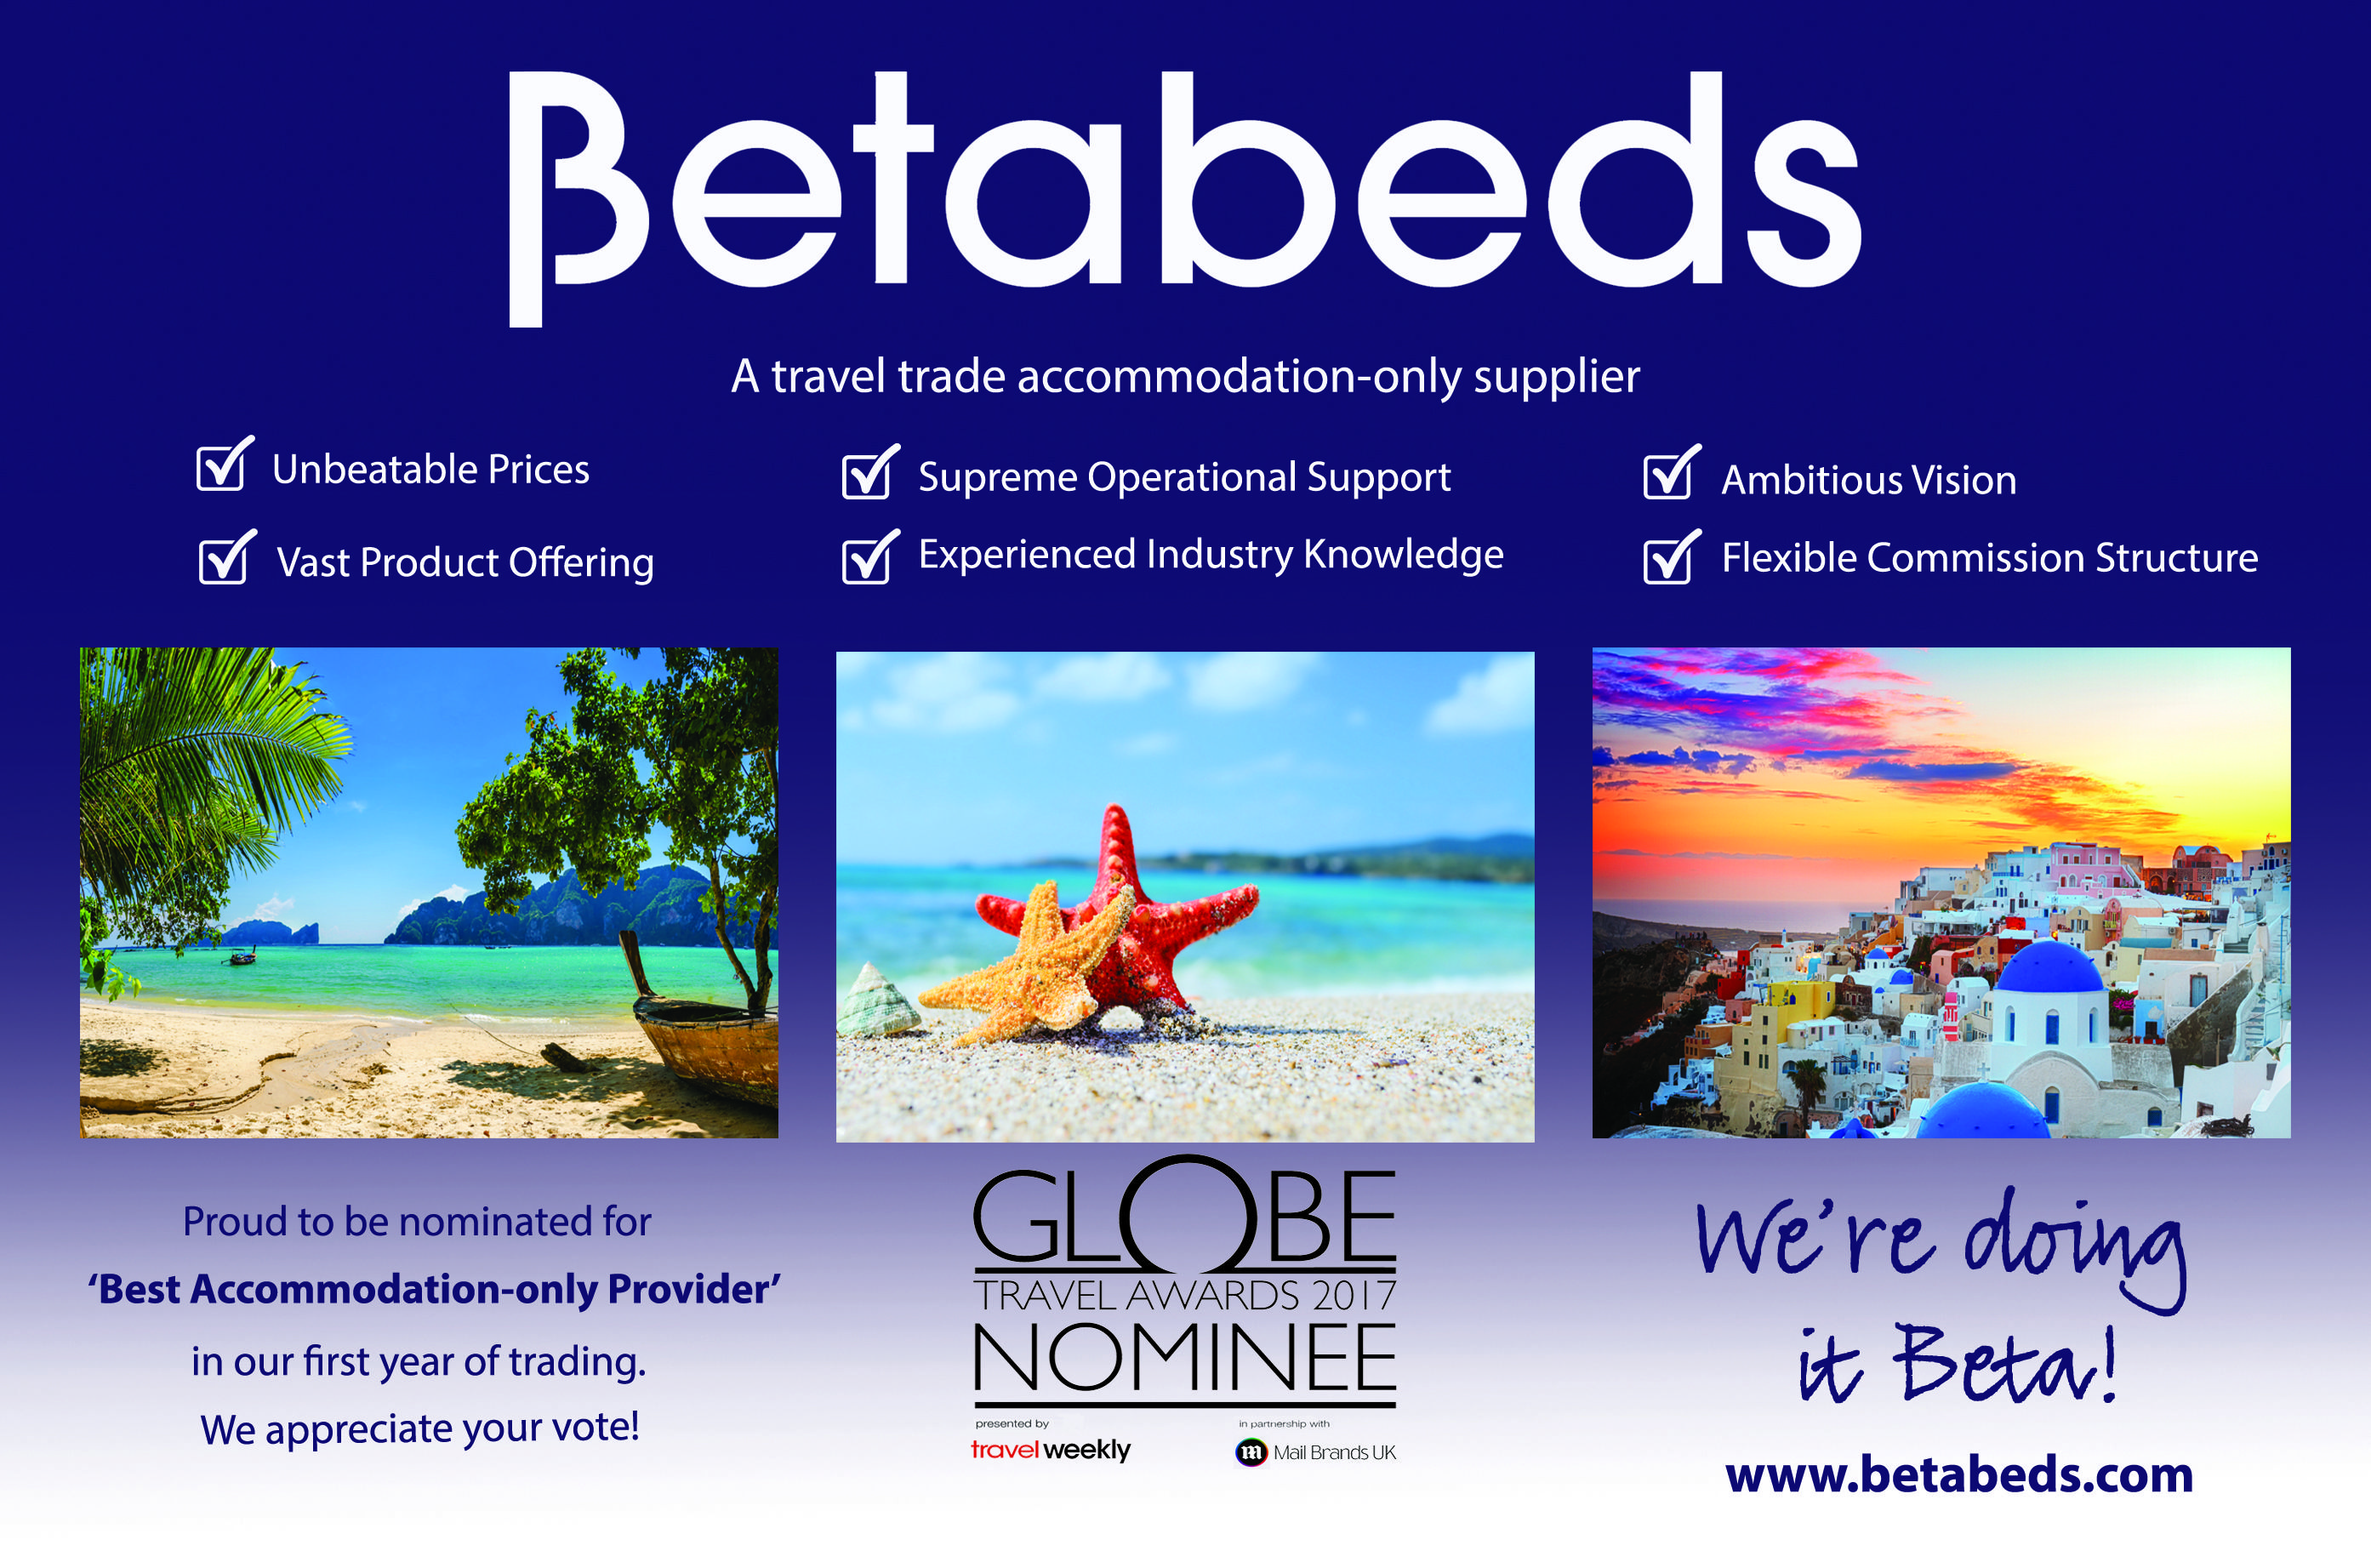 Proud to be nominated for 'Best Accommodation-only Provider' in our first year of trading at the Globe Travel Awards 2017! We appreciate your vote! Voting closes 5pm on 7th December 2016. We're doing it Beta!